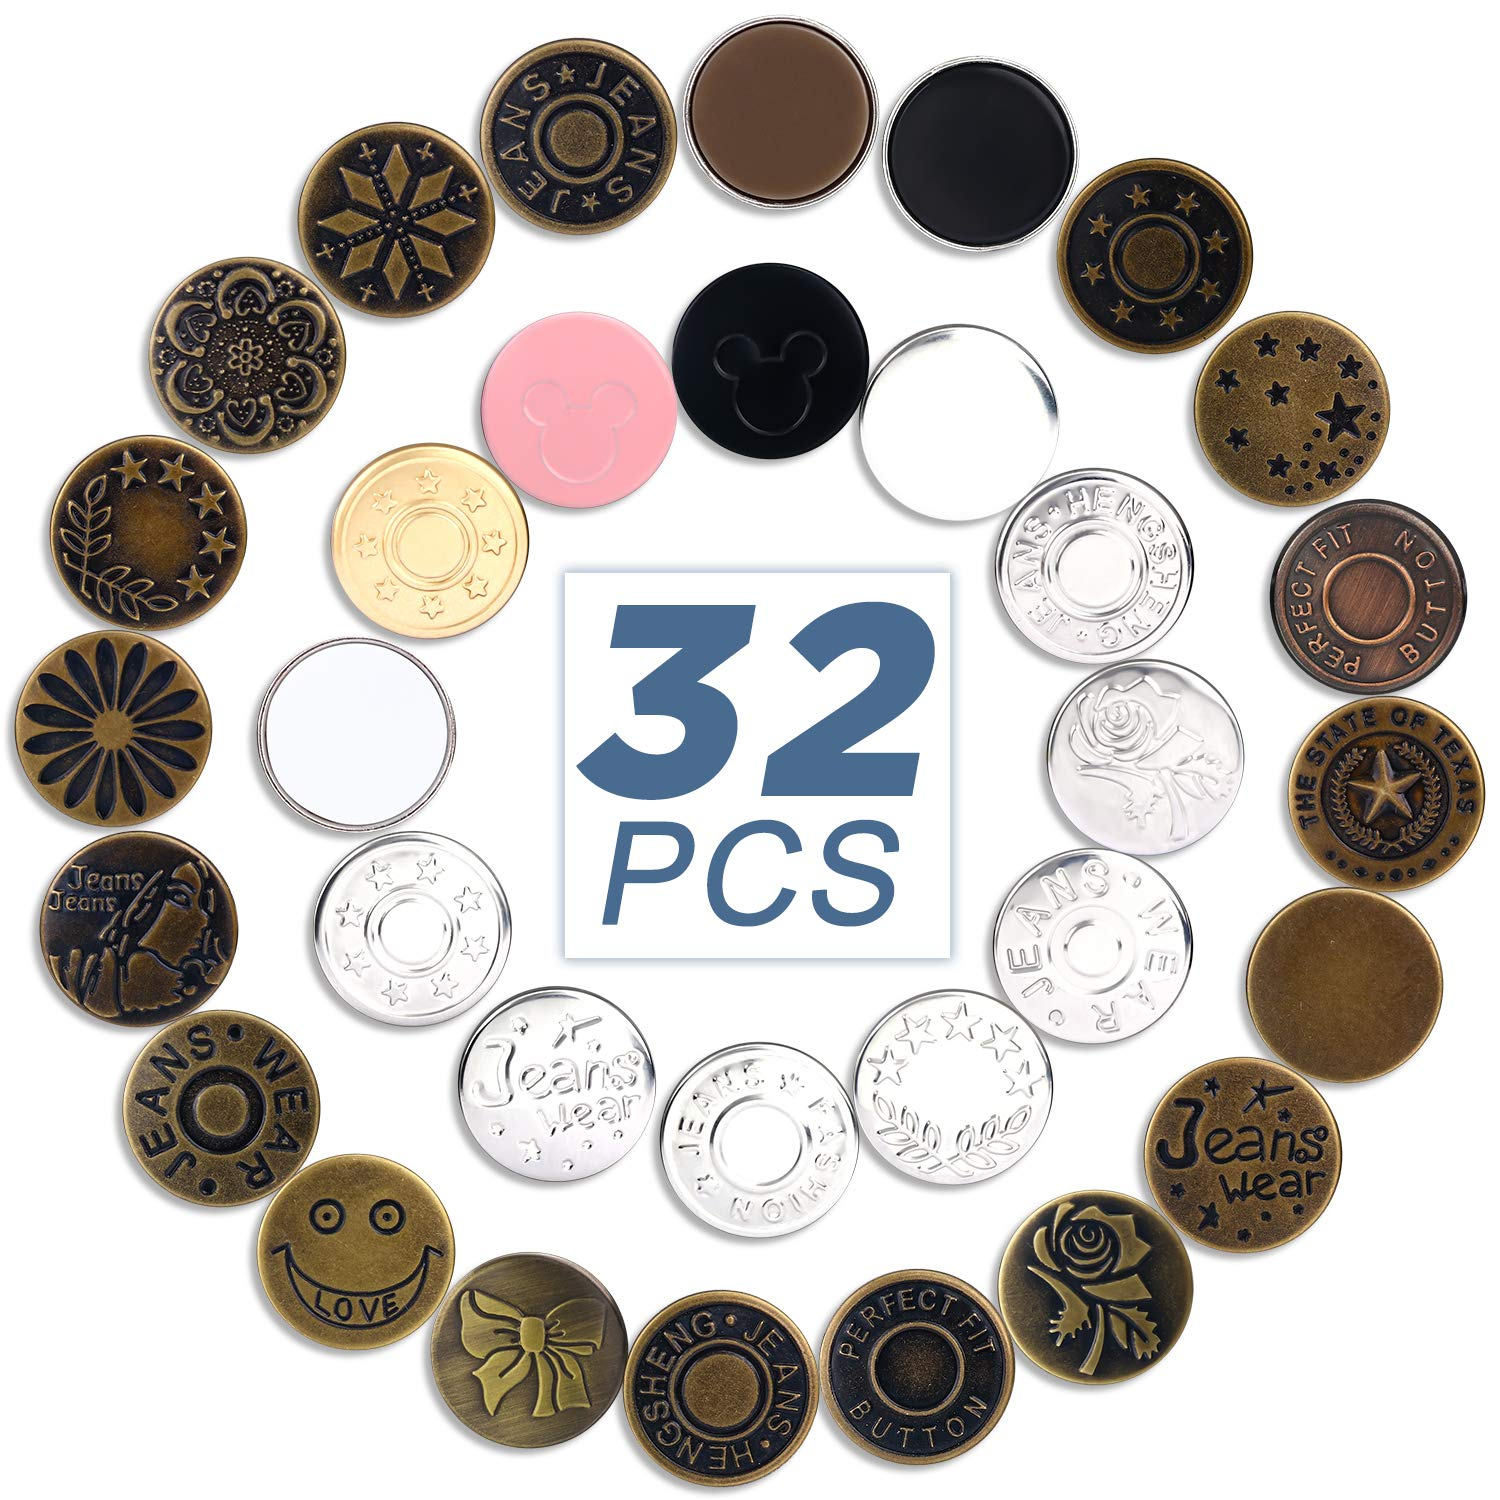 32 PCS Button Pins, No Sew Adjustable Jeans Button, Replacement Instant Button for Pants Jeans Sewing DIY Crafts